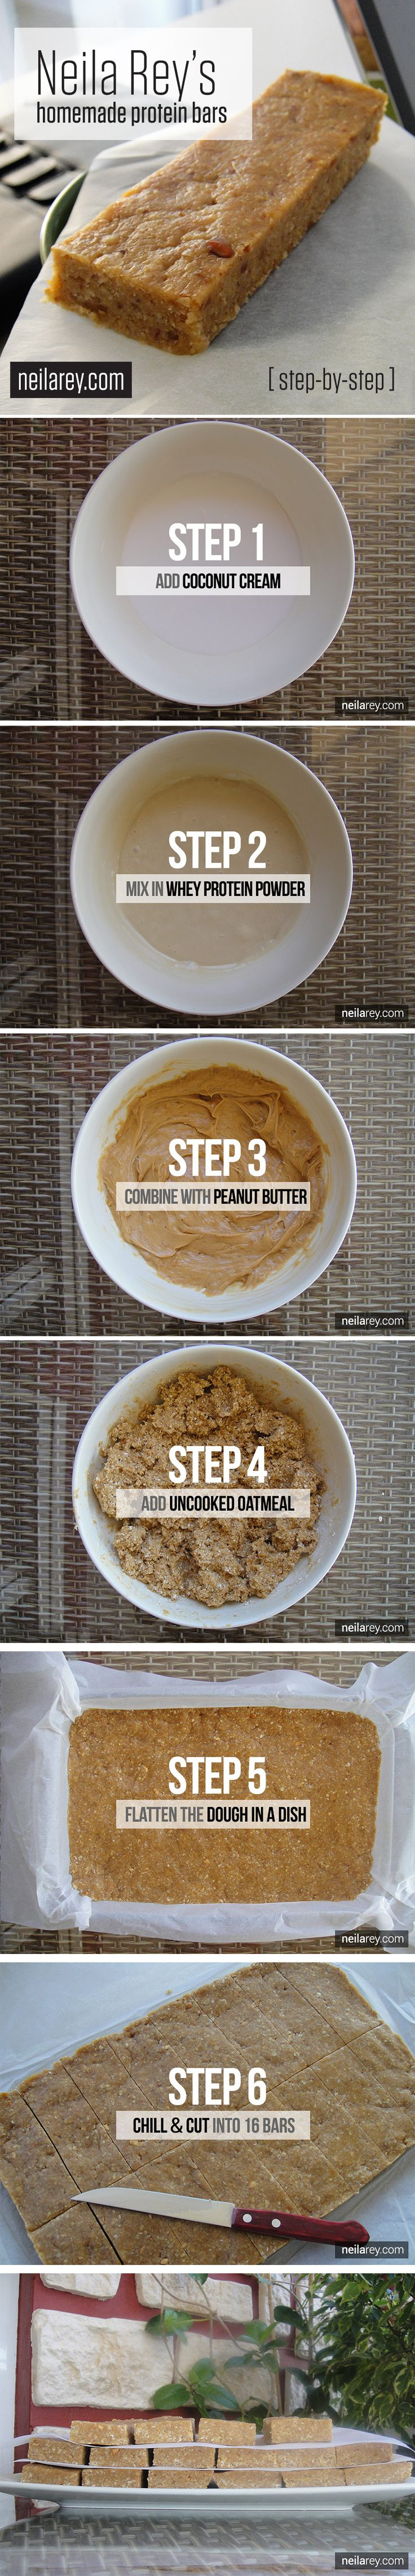 Homemade Protein Bars / Step-by-Step Recipe #healtyhrecipe #recipe #proteinbars